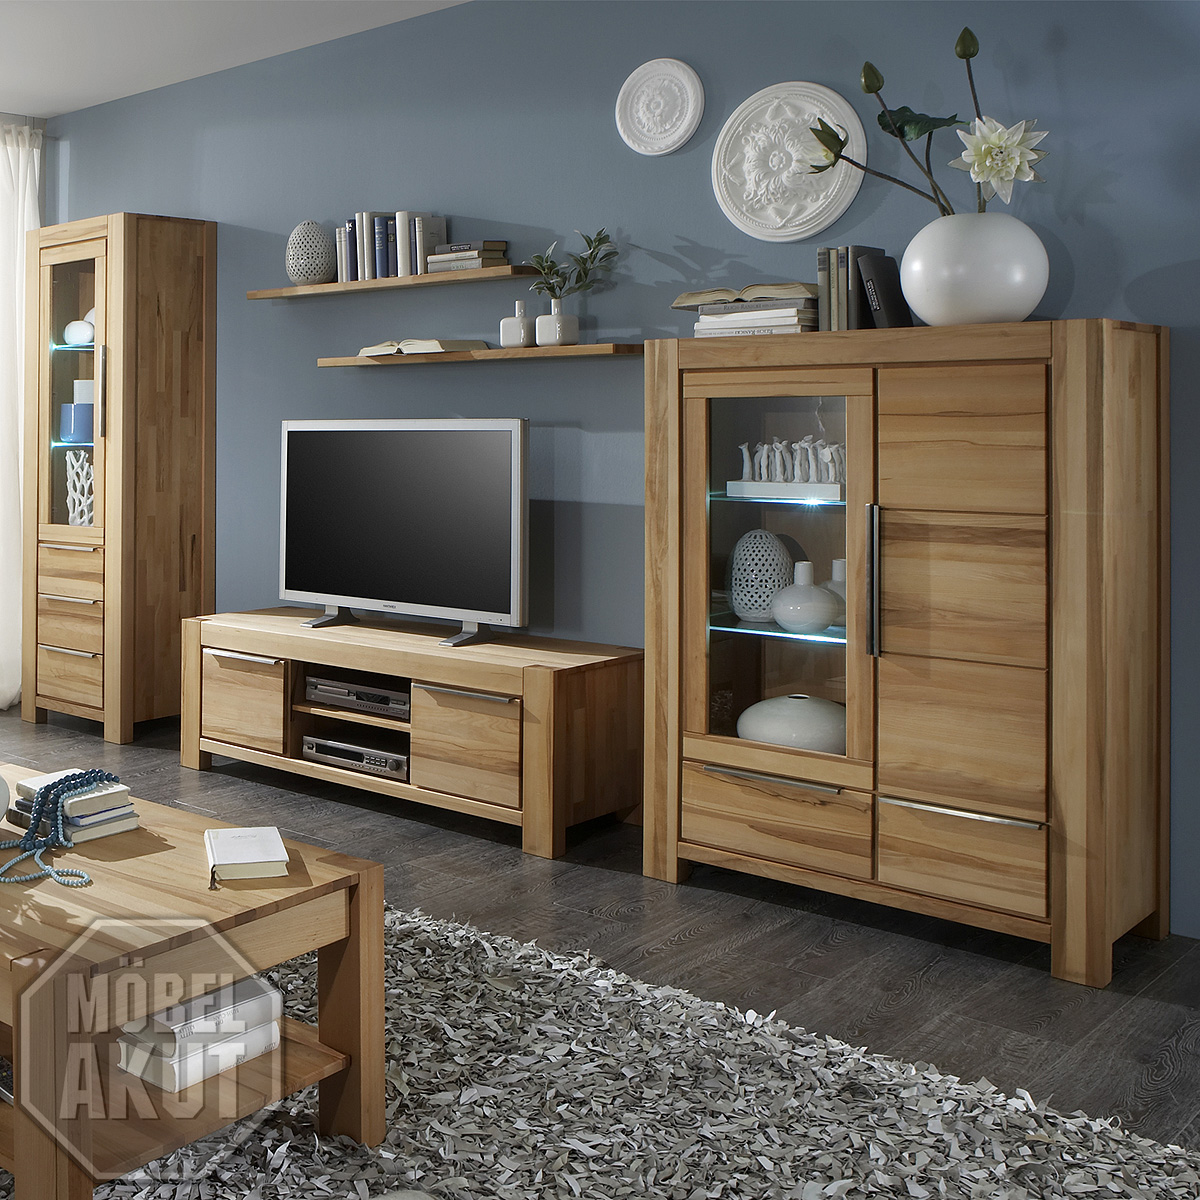 wohnwand nena anbauwand wohnkombi wohnzimmer in kern buche massiv ge lt ebay. Black Bedroom Furniture Sets. Home Design Ideas